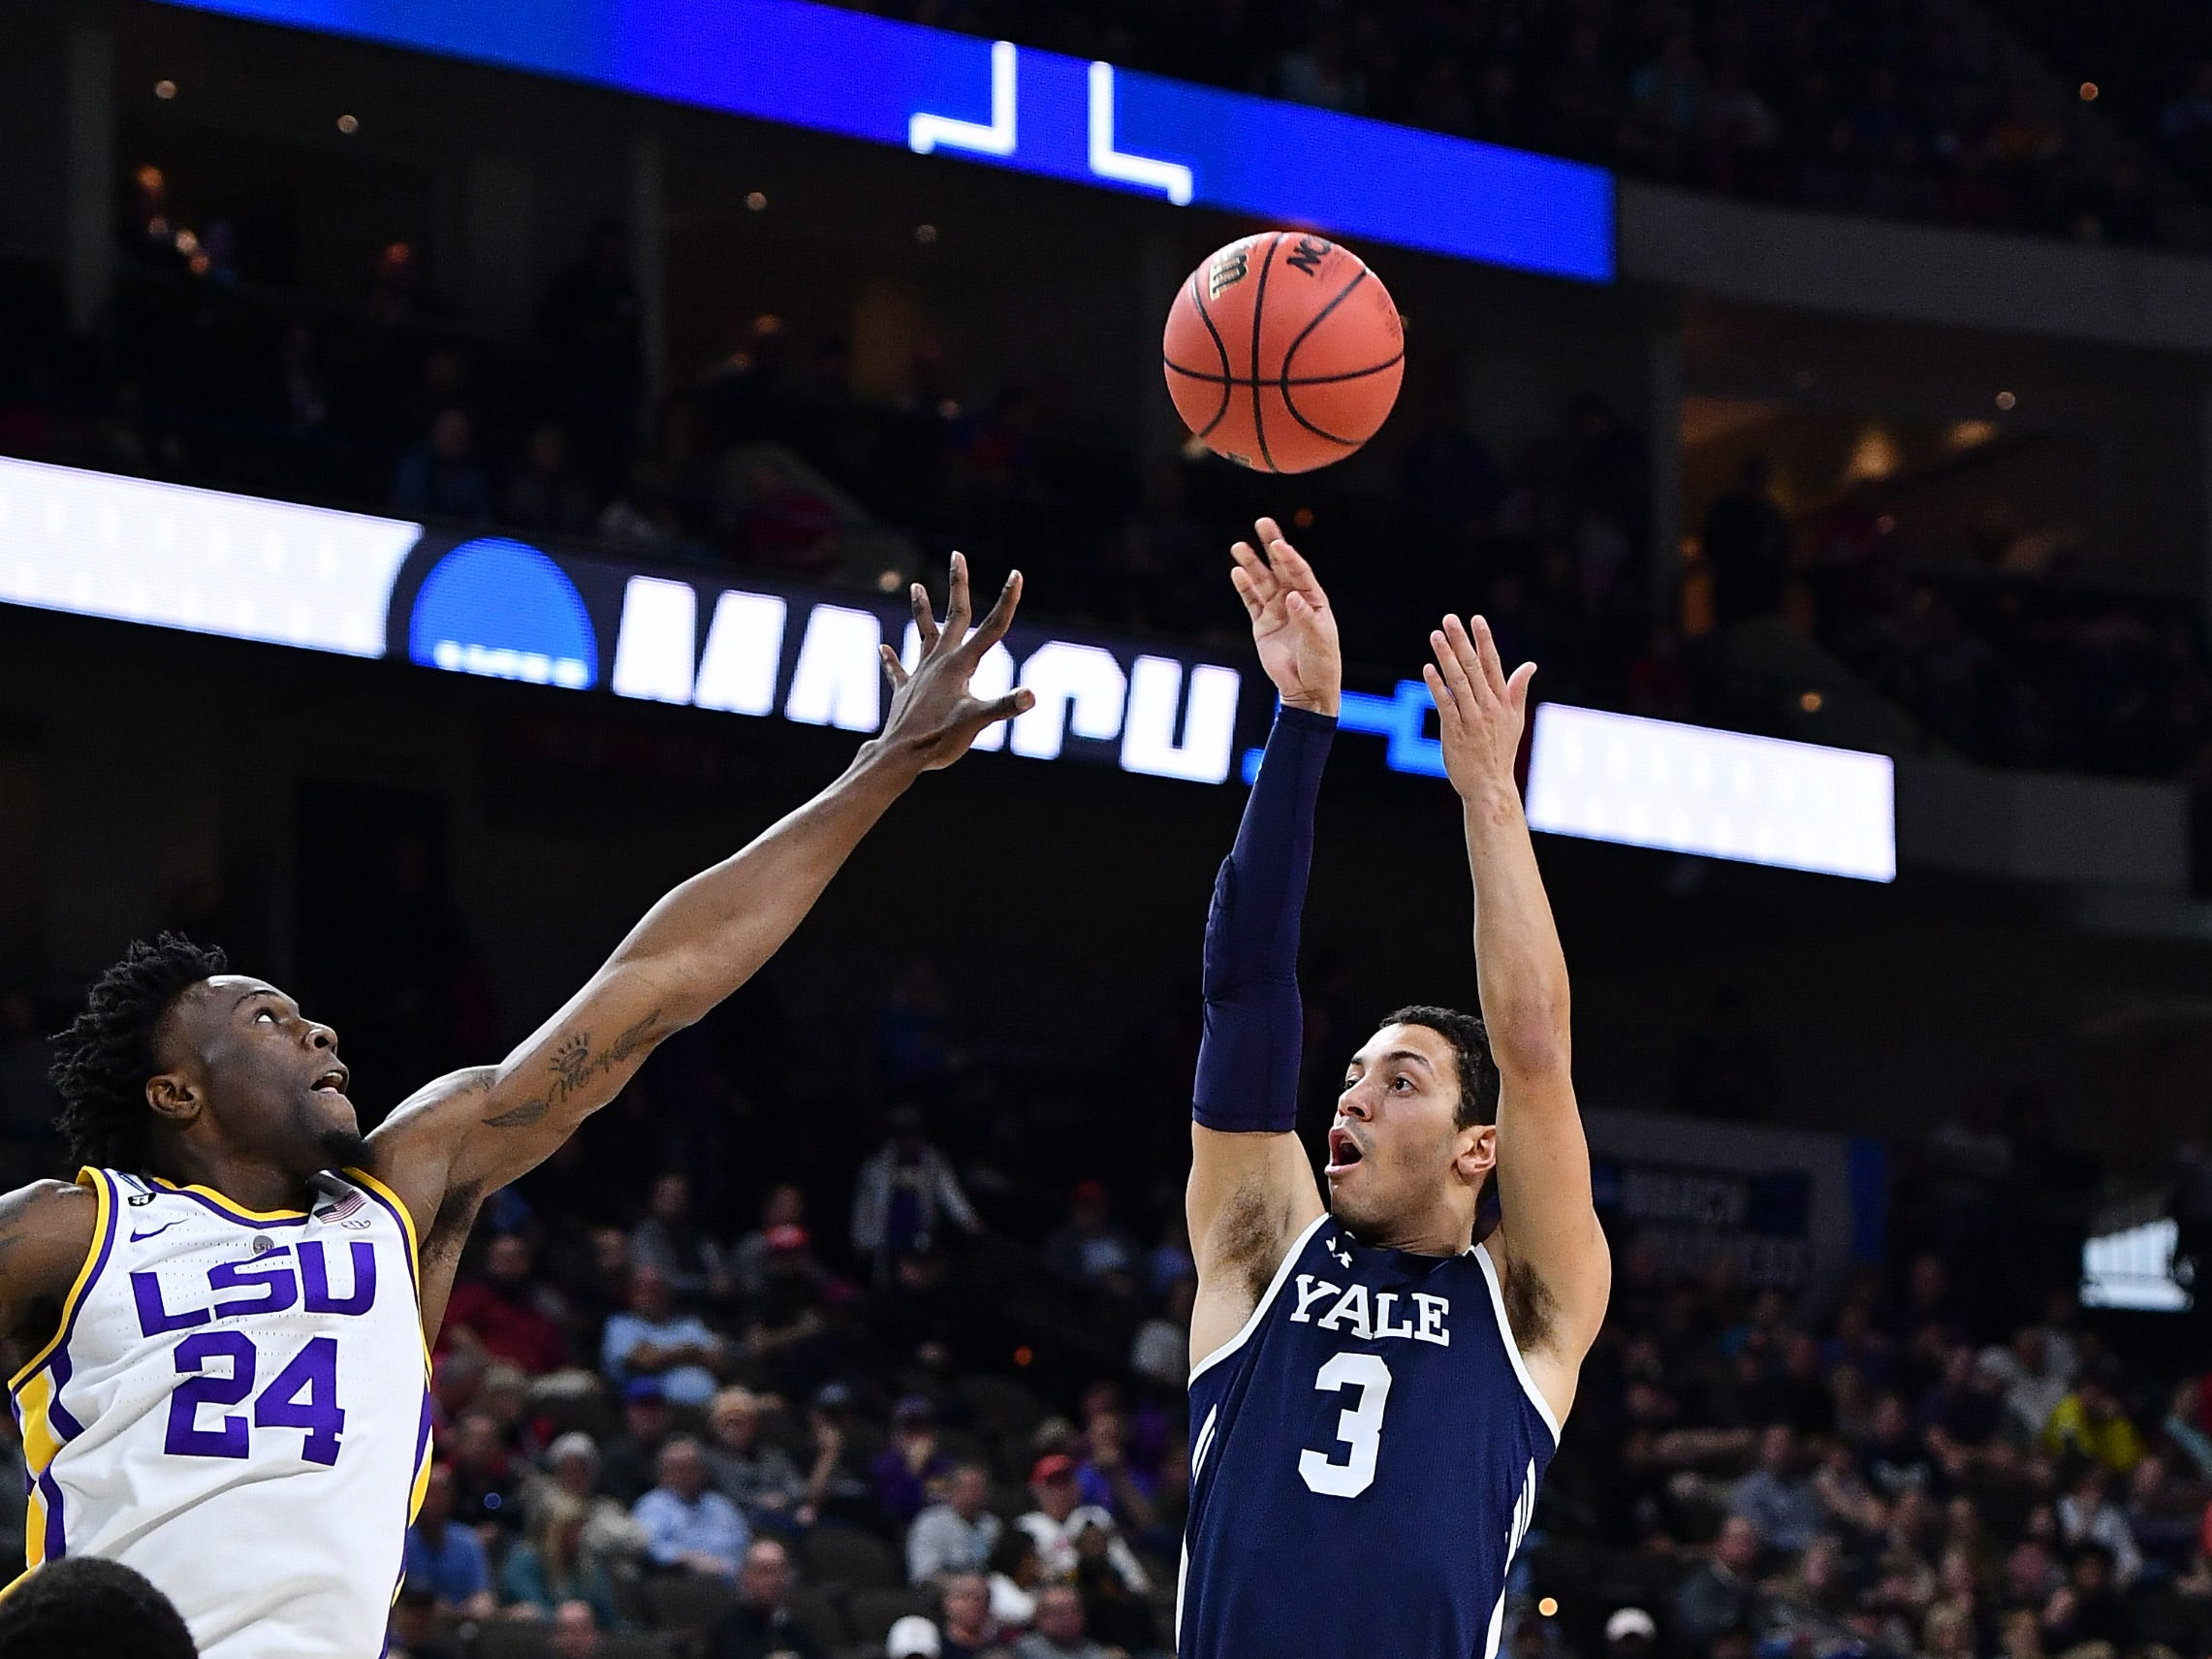 Mar 21, 2019; Jacksonville, FL, USA; Yale Bulldogs guard Alex Copeland (3) shoots against LSU Tigers forward Emmitt Williams (24) during the first half in the first round of the 2019 NCAA Tournament at Jacksonville Veterans Memorial Arena. Mandatory Credit: John David Mercer-USA TODAY Sports